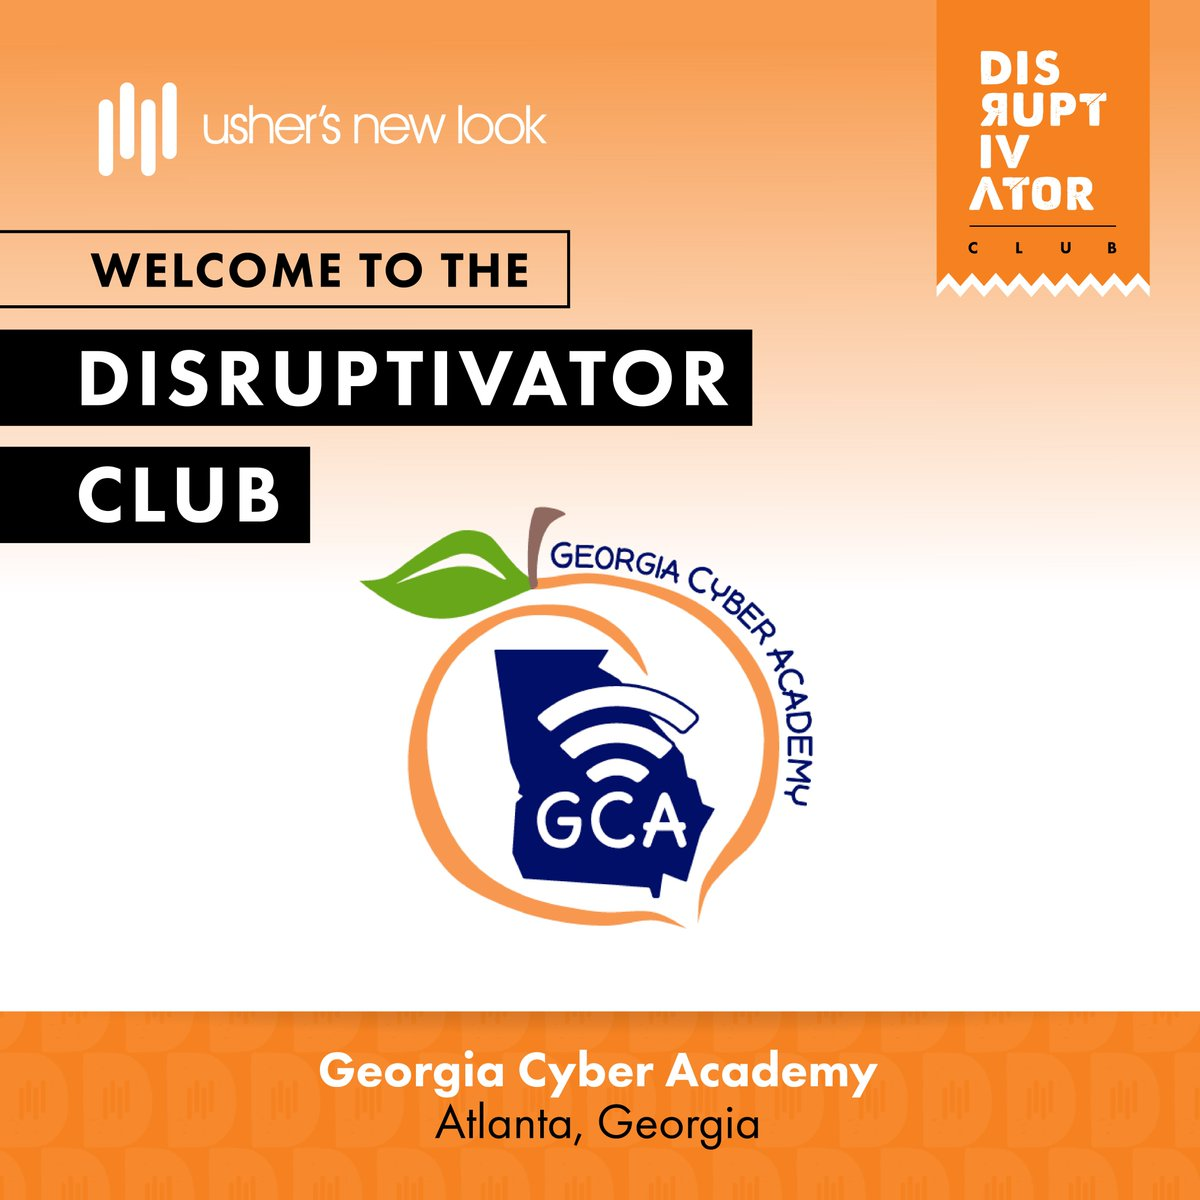 We're excited to welcome @GaCyberAcademy as the newest members of our #DisruptivatorClub! We remain committed to expanding our reach and making the programming, resources, and opportunities of #UshersNewLook available to high school youth across the country.